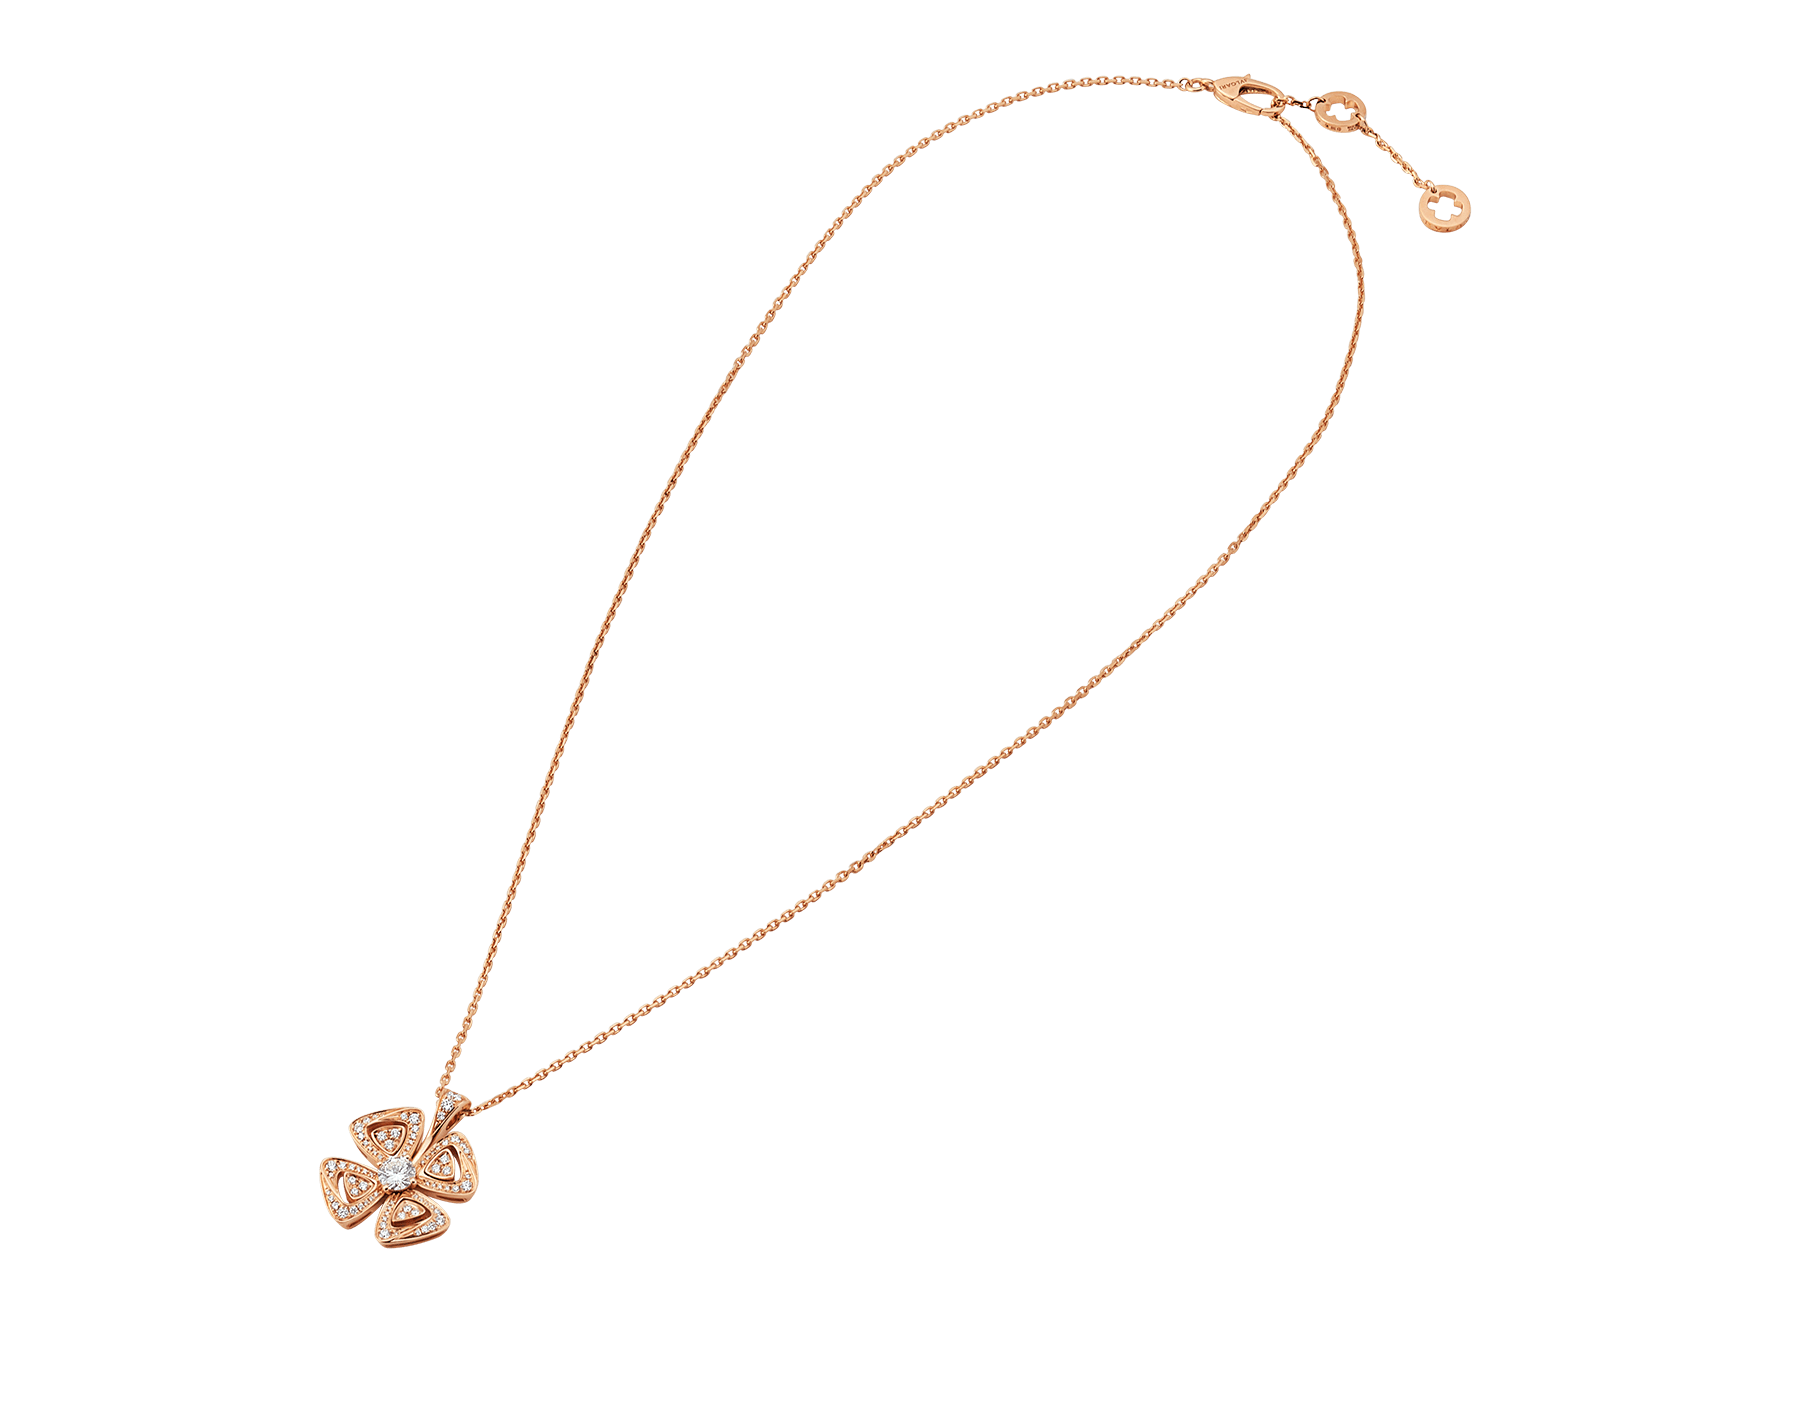 Collier Fiorever en or rose 18 K serti d'un diamant de centre avec pavé diamants 355885 image 2